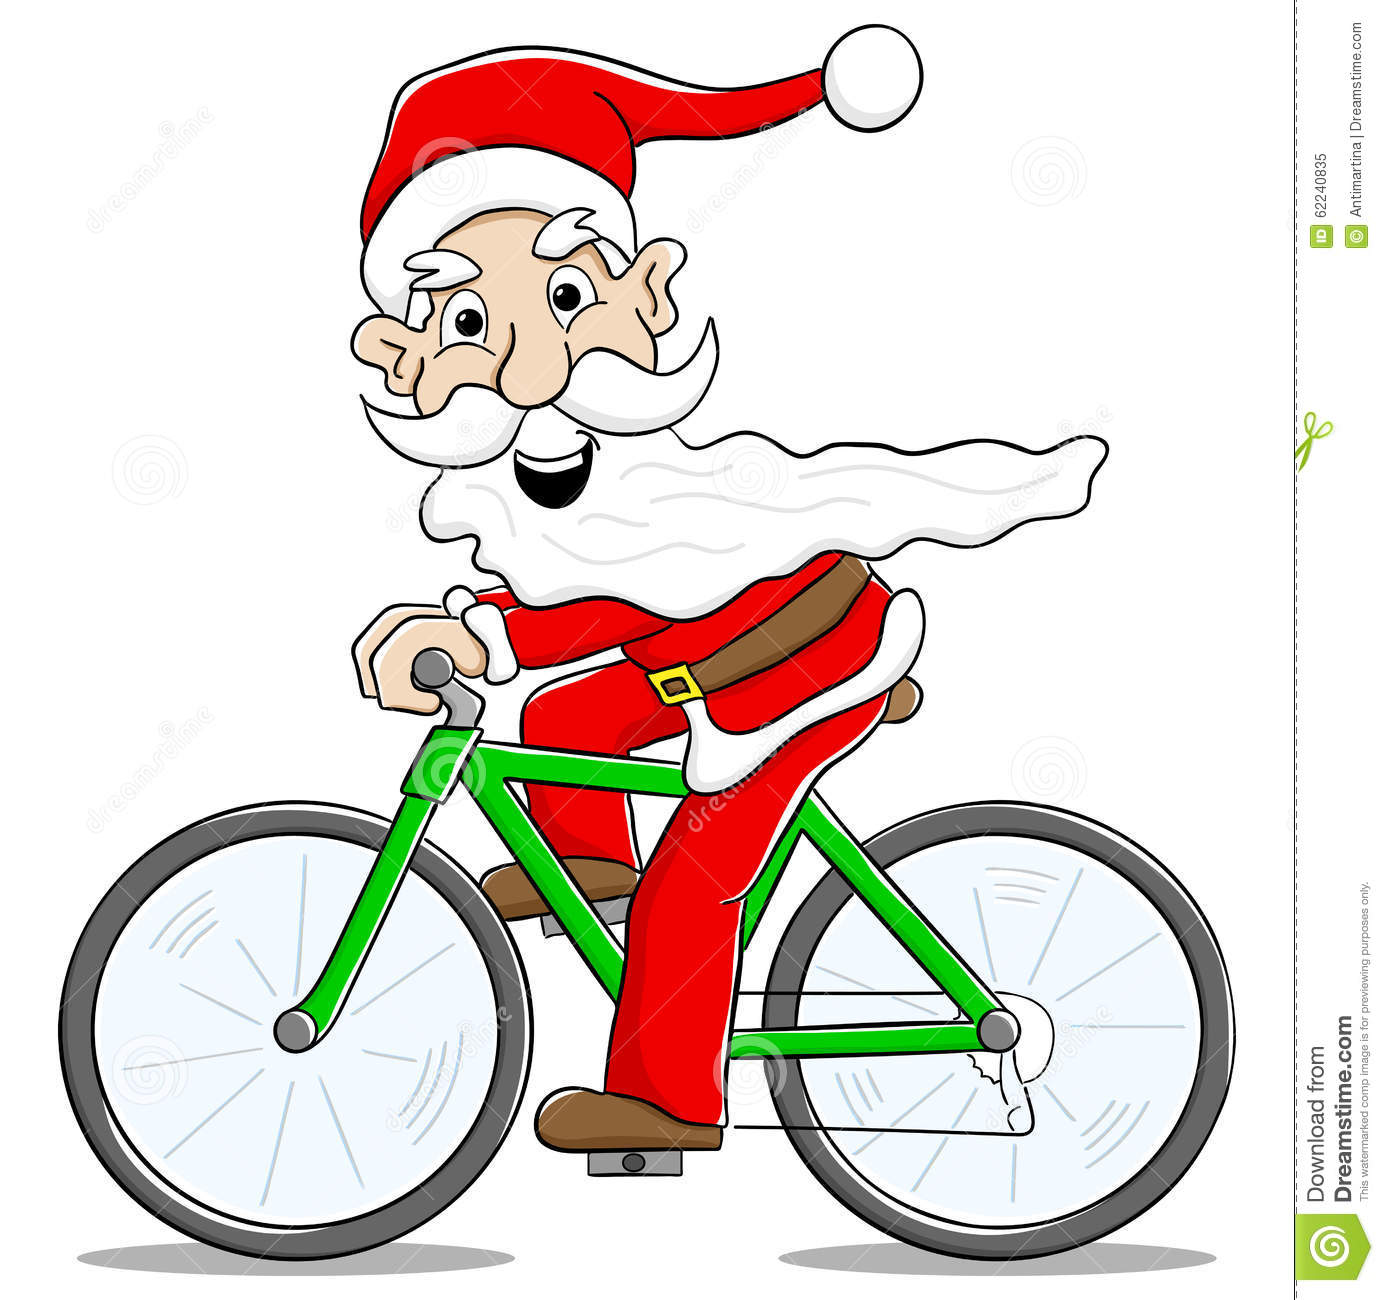 Kerstman Op Fiets Verlichting Santa Claus On Bicycle Delivering Christmas Gifts Stock